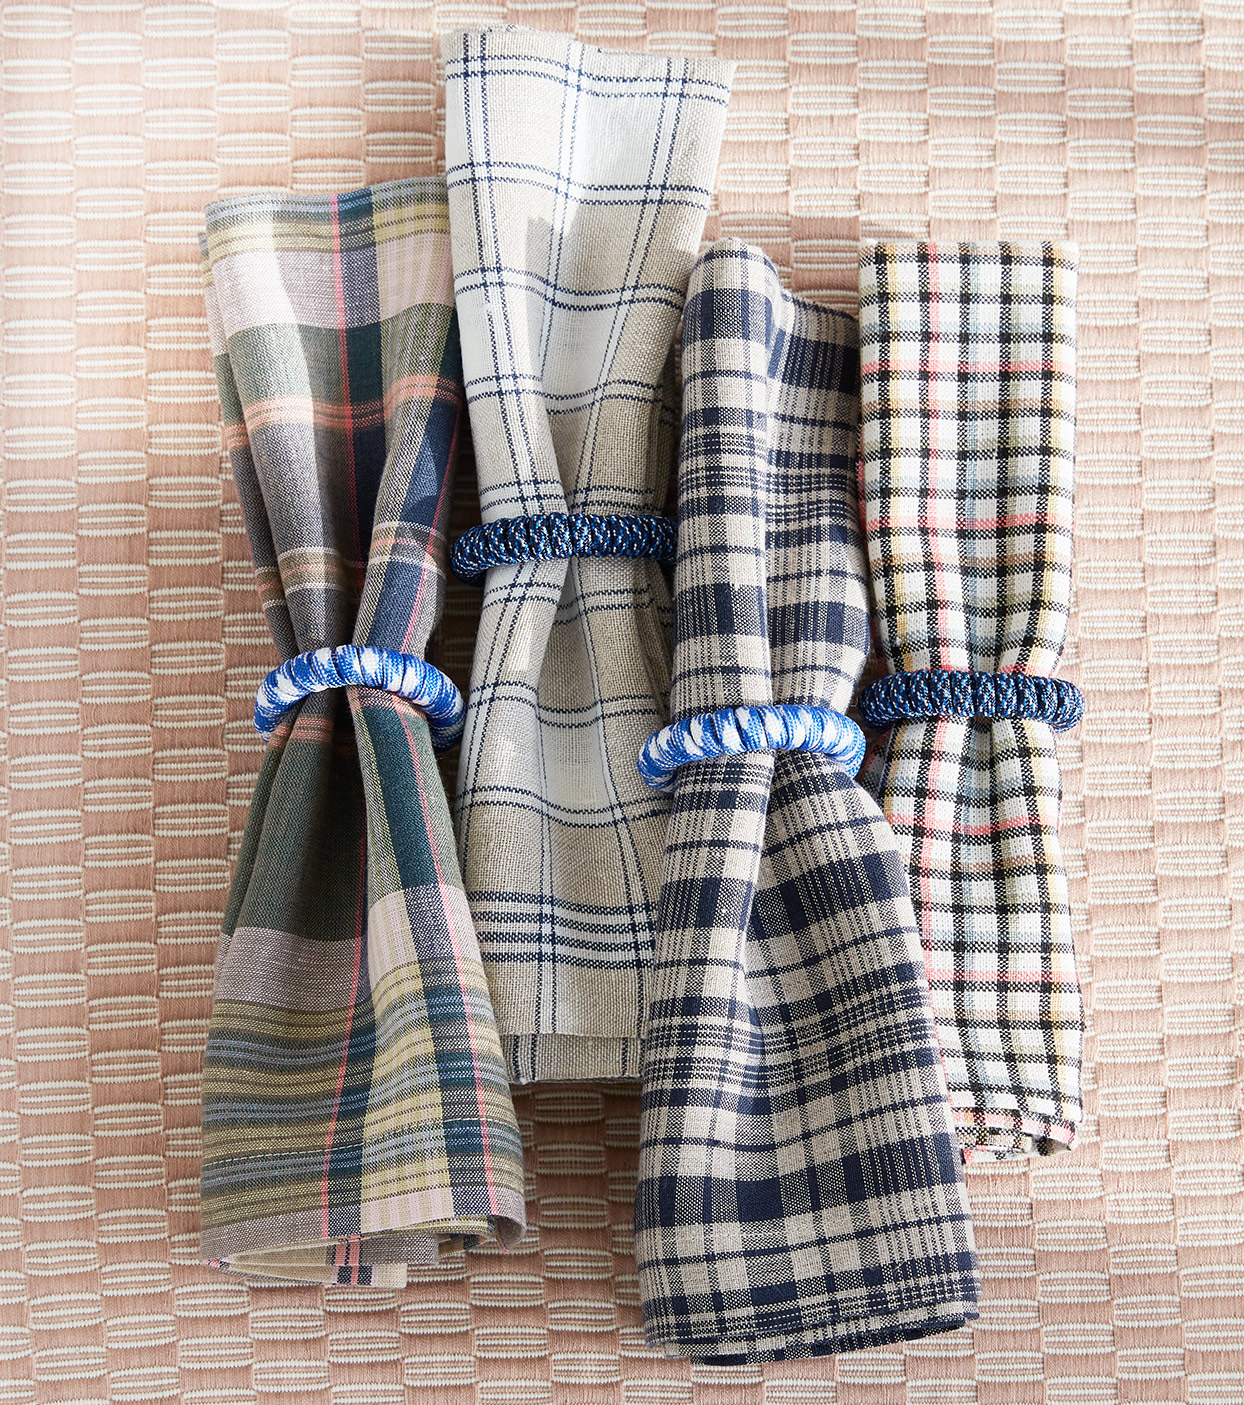 Four patterned napkins on table cloth